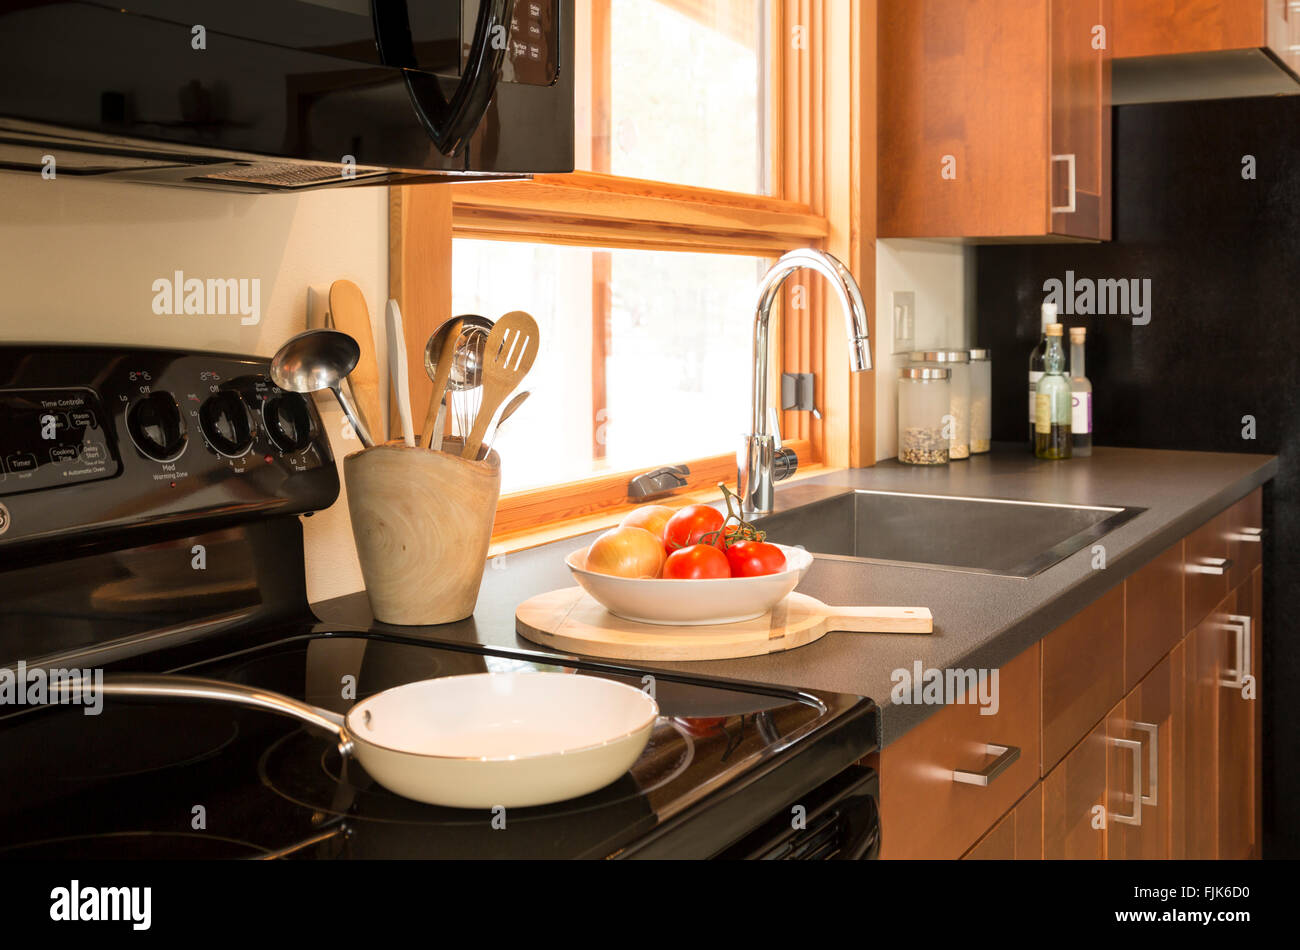 Electric stove, wood cabinets, laminate countertop and stainless steel sink in contemporary home kitchen interior. - Stock Image